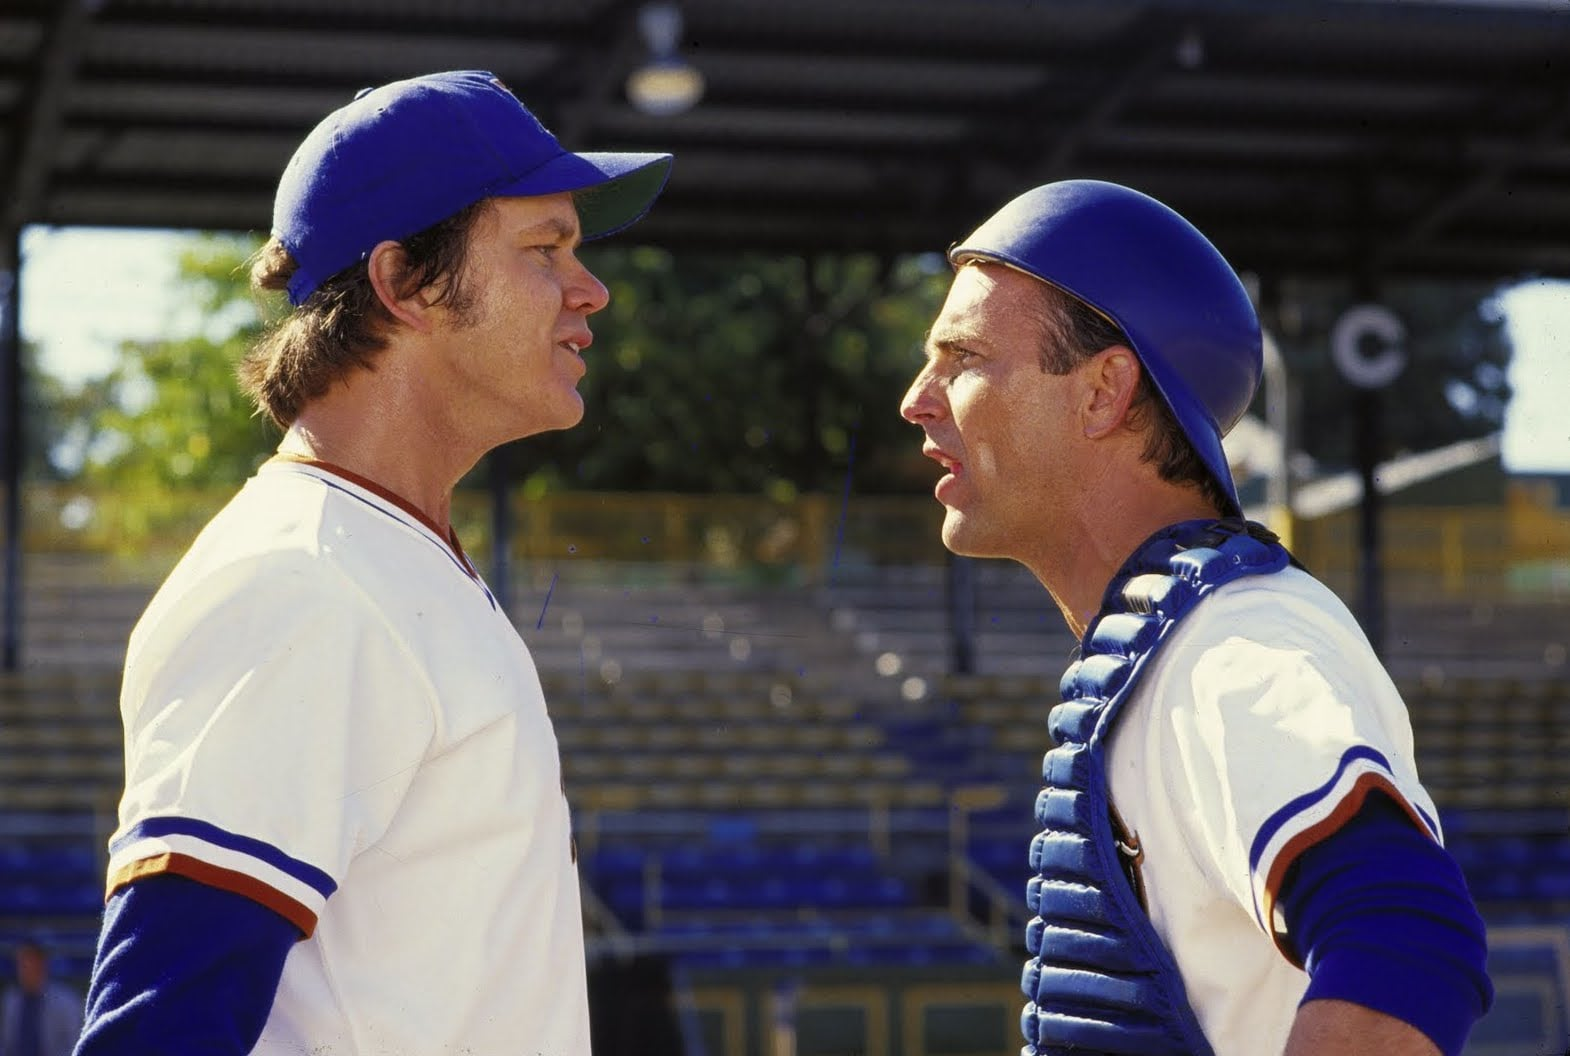 Bull Durham came out in 1988.